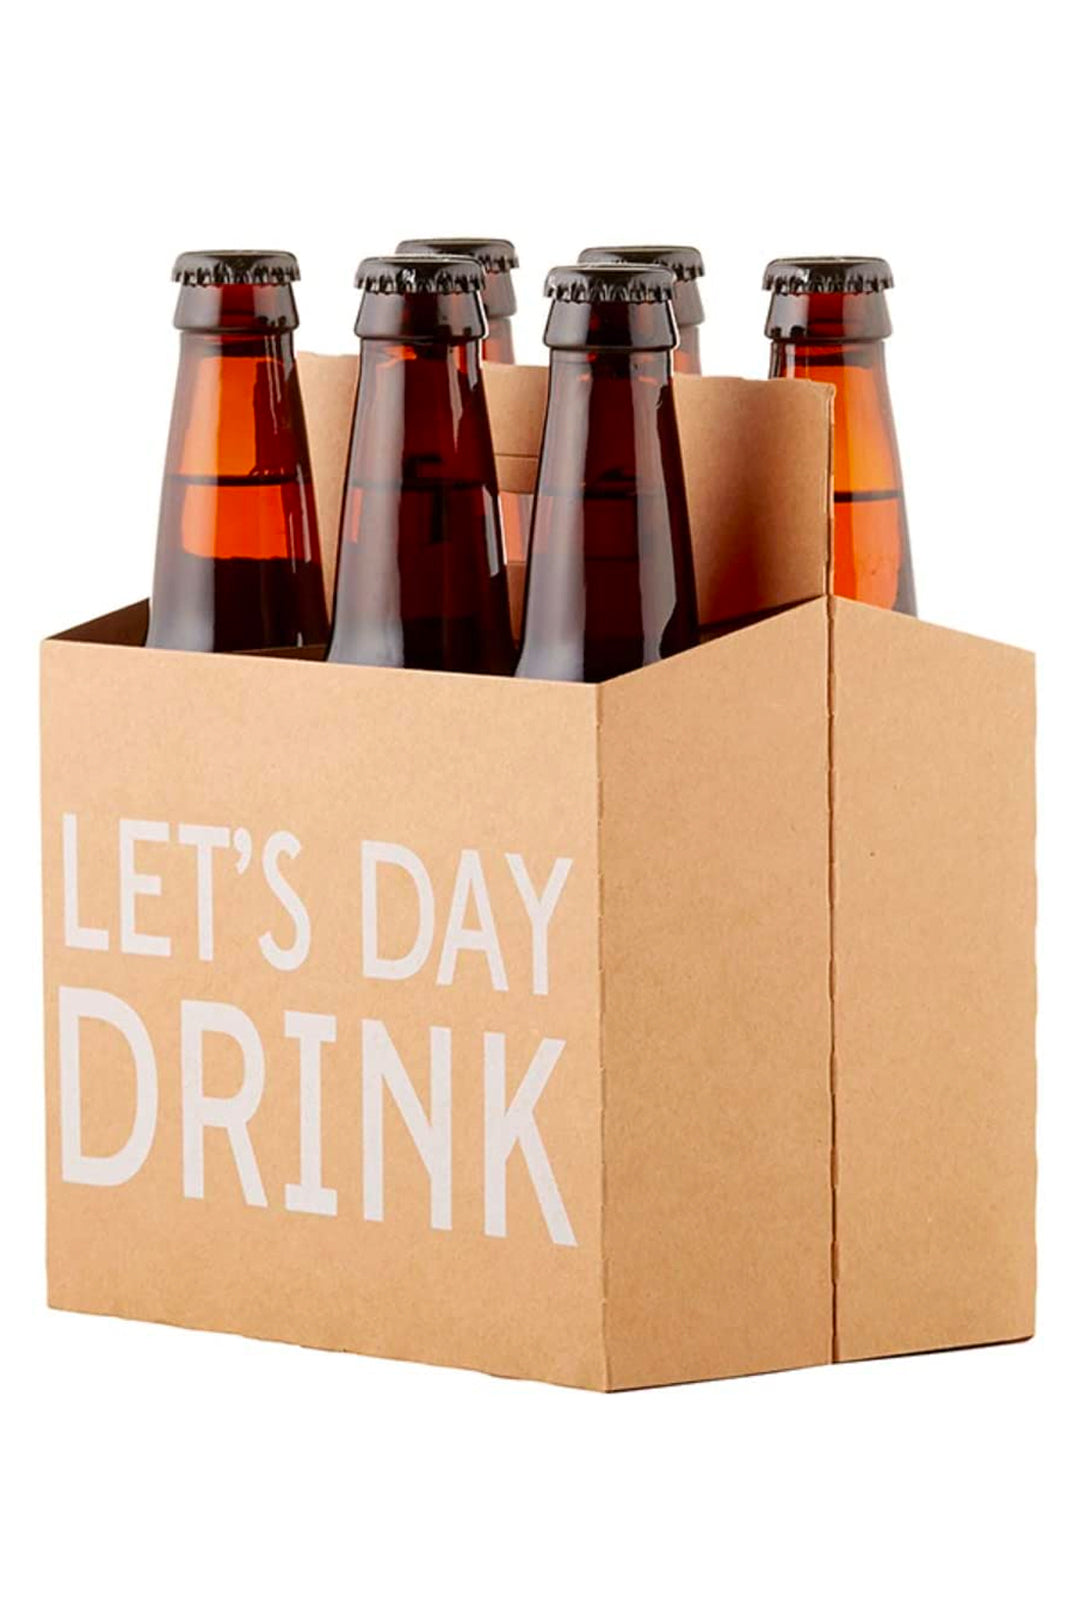 Let's Day Drink Beer Carrier